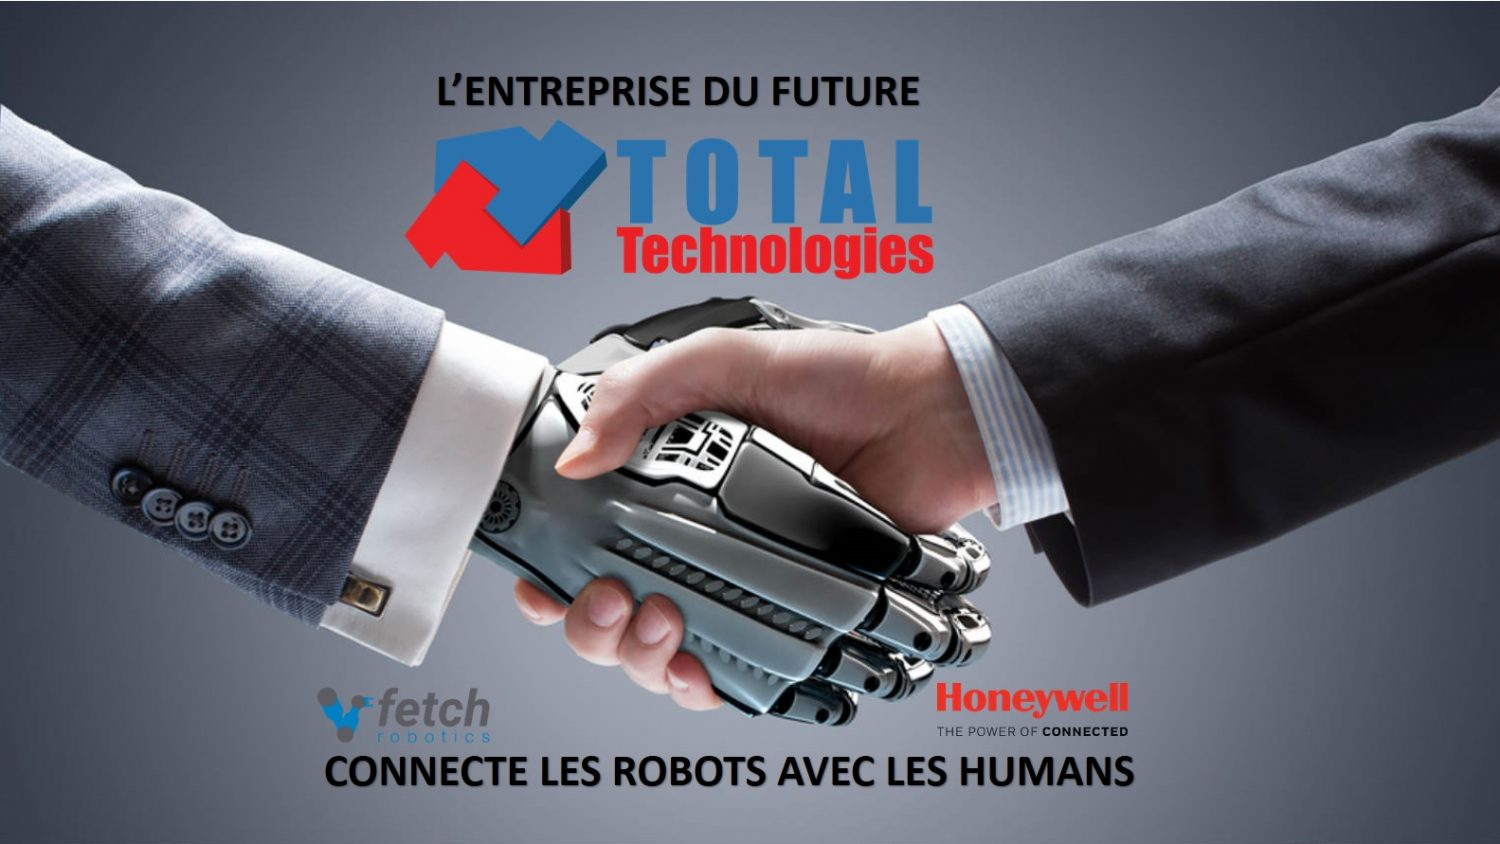 Total Technologies invited you to Les RENCONTRES FRANCOPHONES d 'AFFAIRES together with the partners Honeywell and Fetch Robotics!